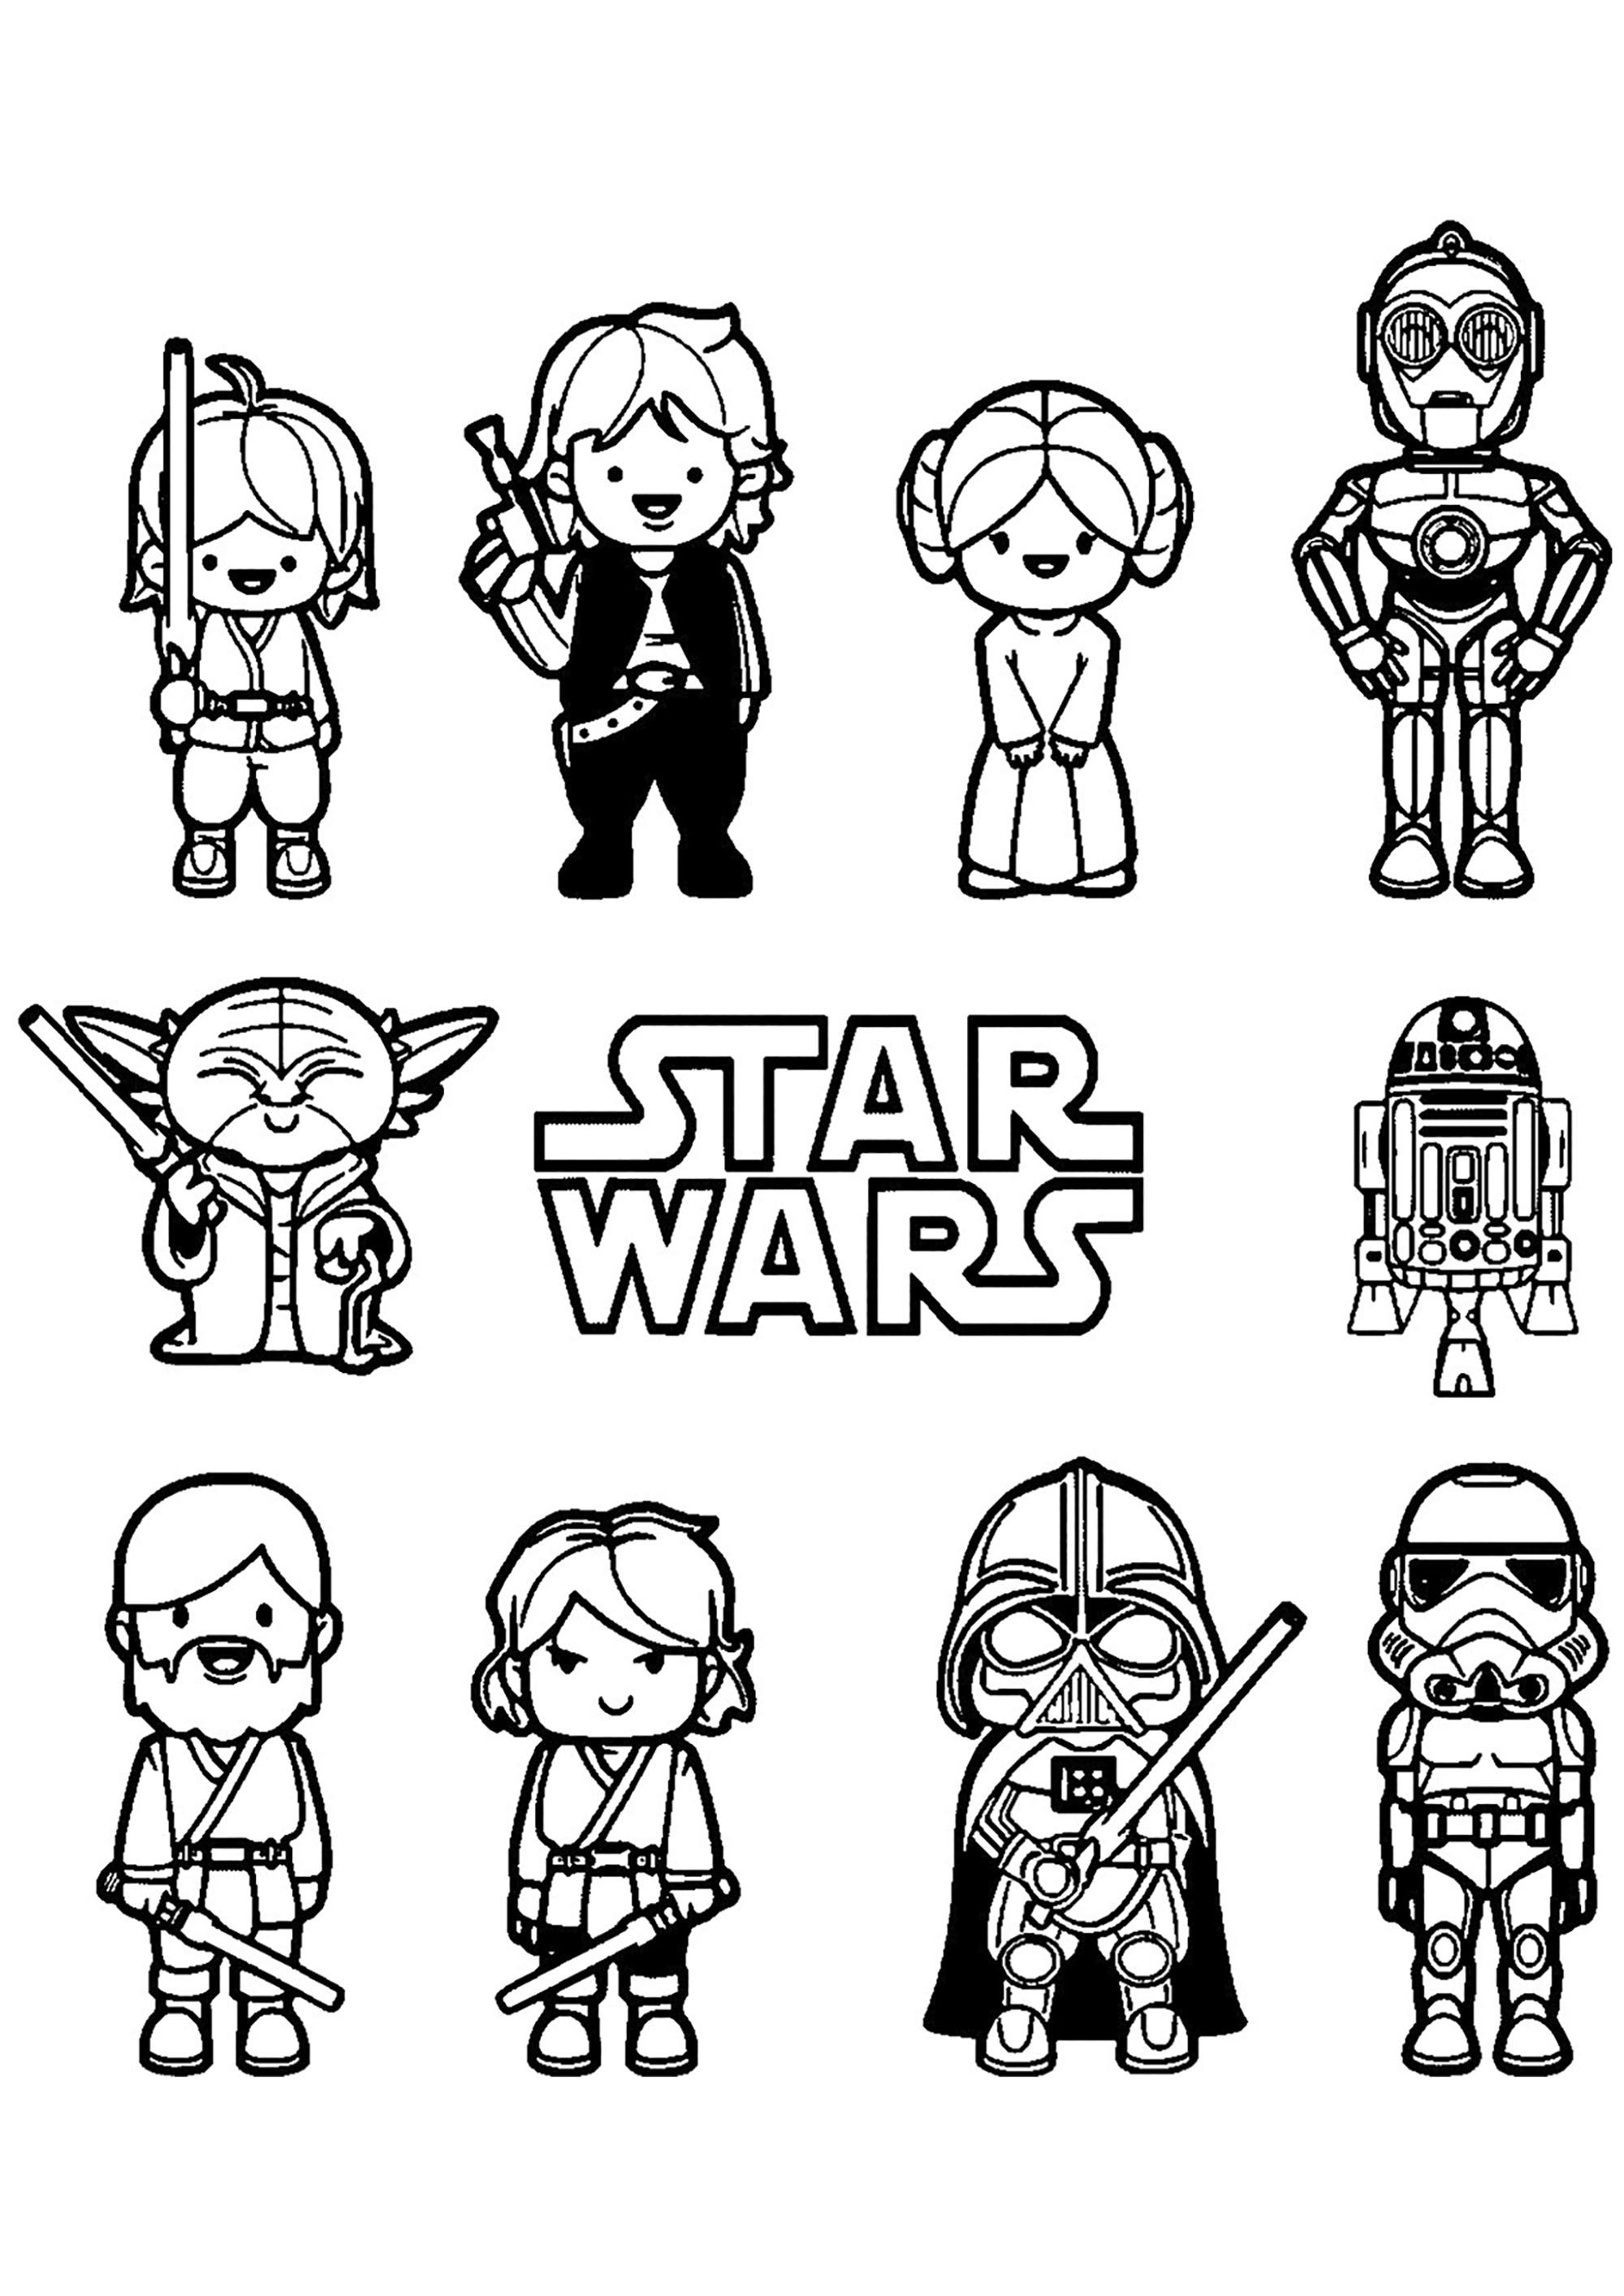 Coloring Pages For Children Star Wars Star Wars Coloring Book Star Wars Colors Star Wars Cartoon